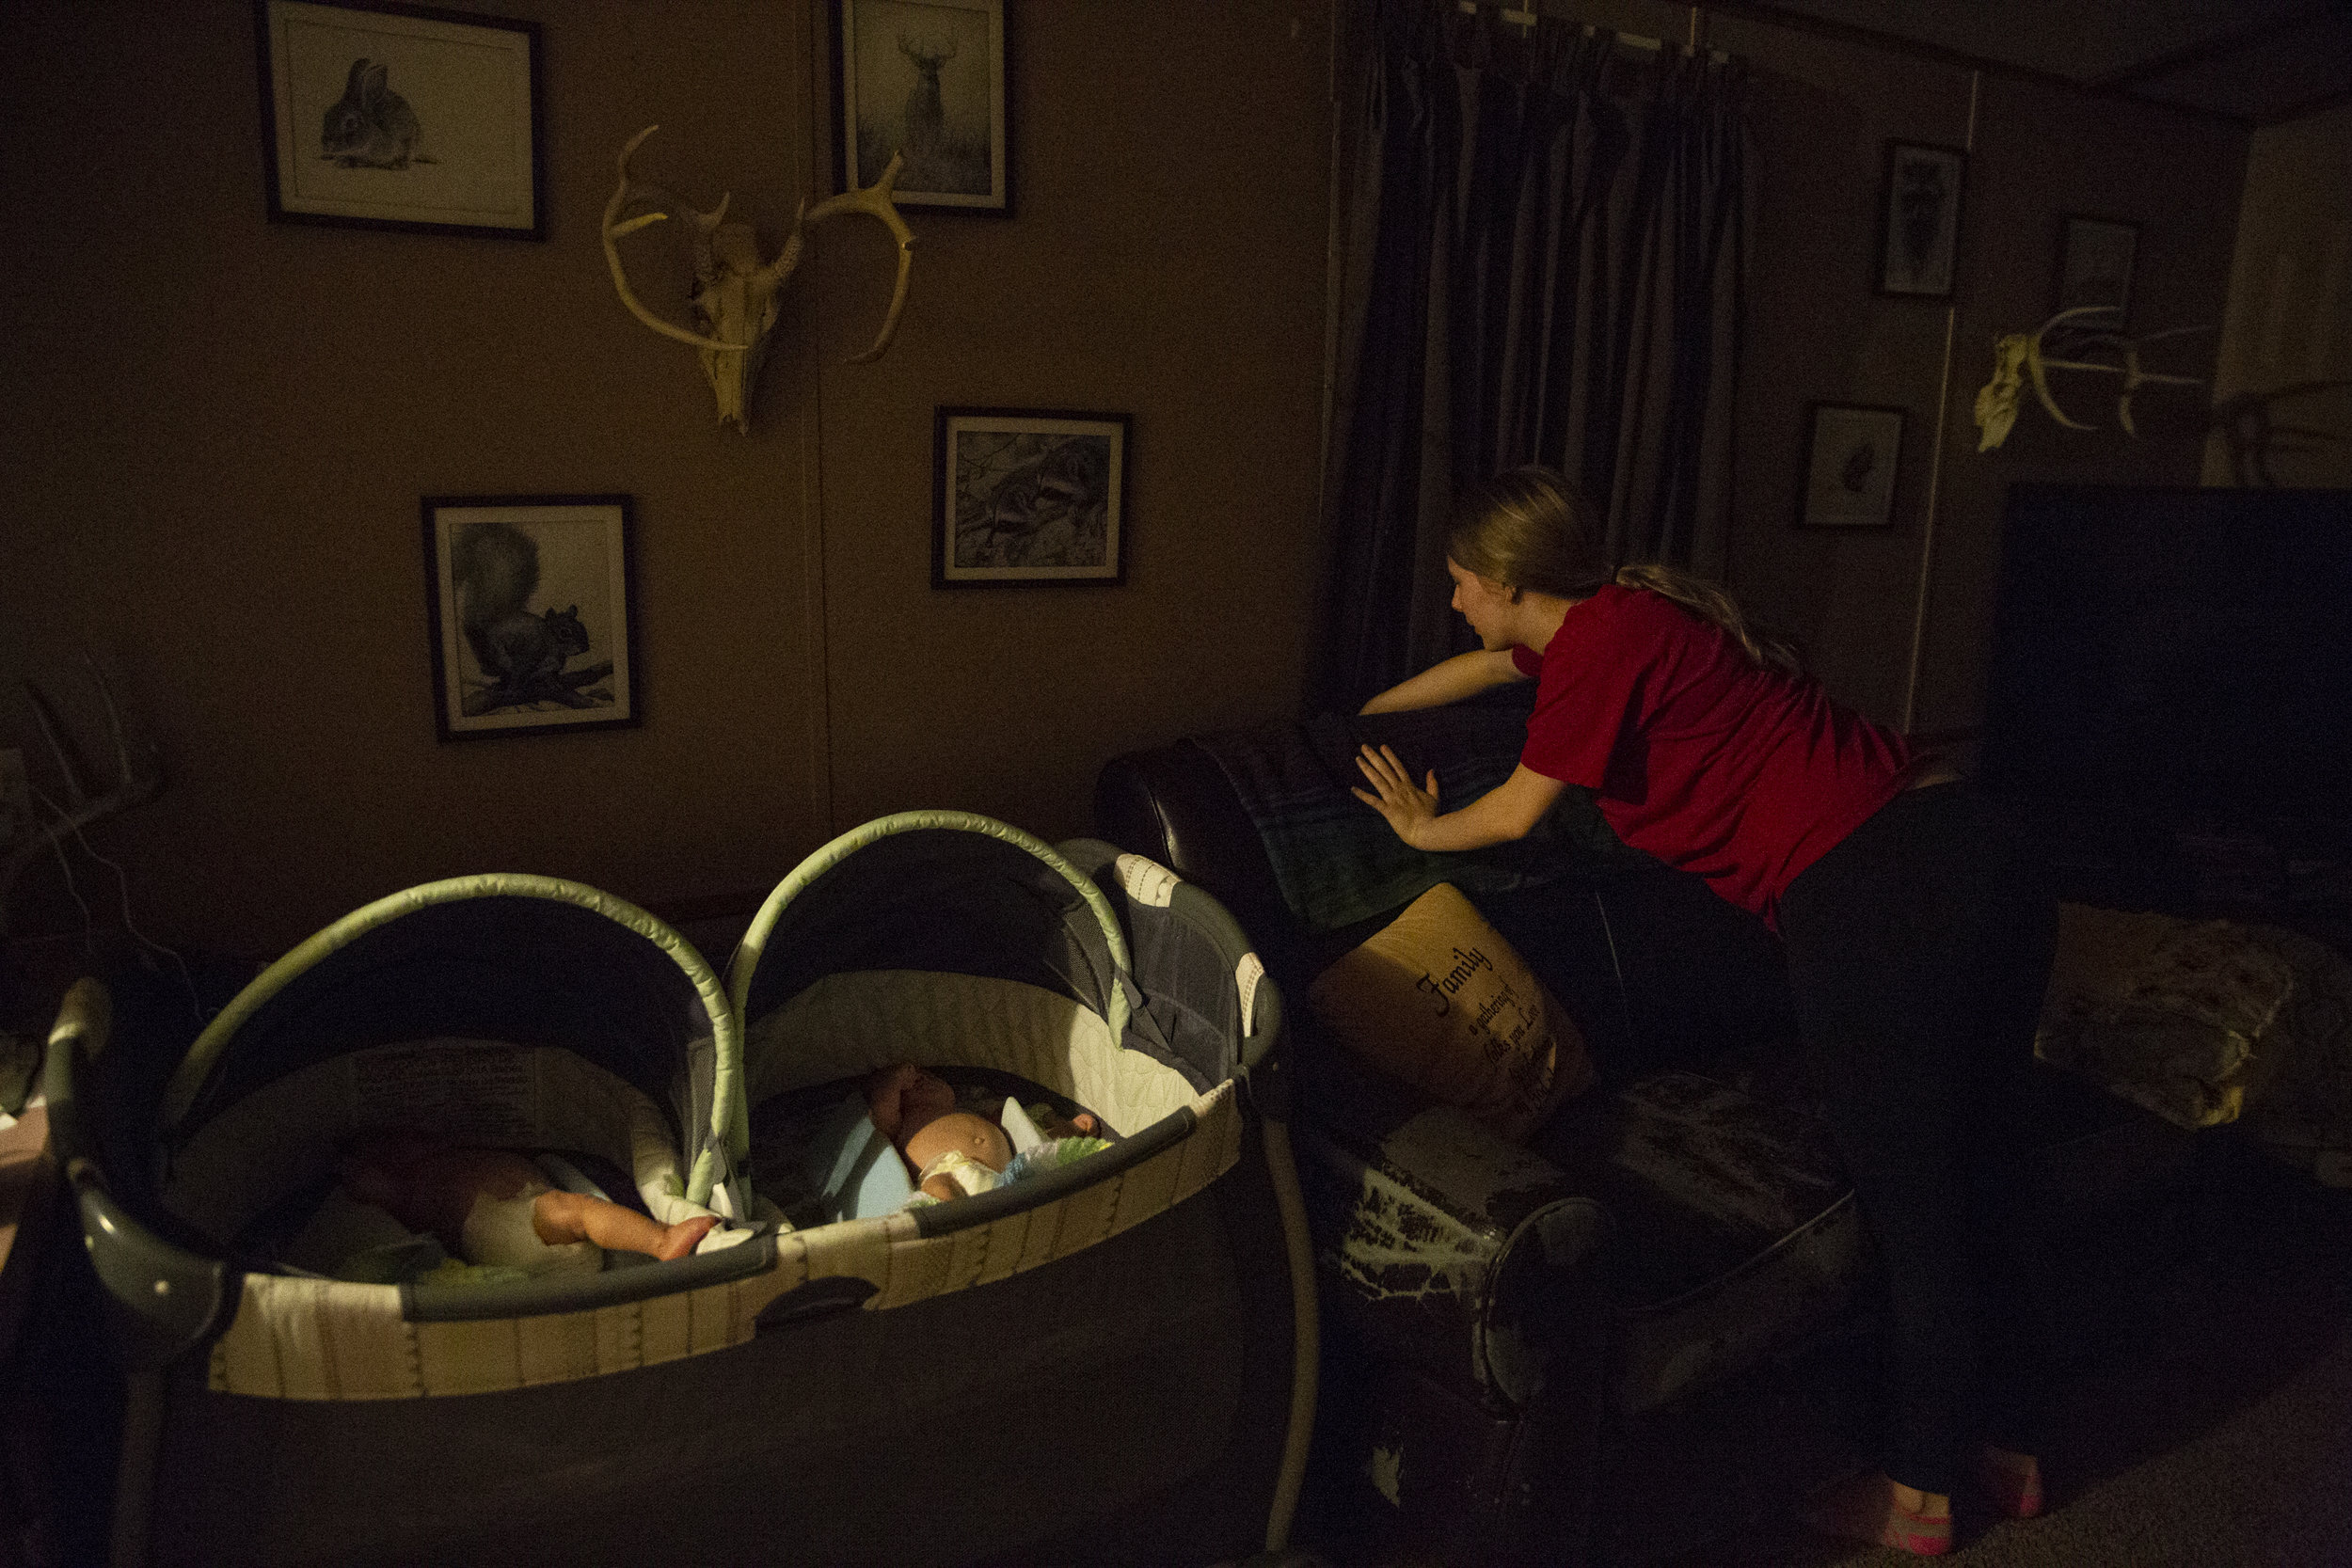 First-time mother April Riley, 19, cleans up at night after her three-month-old twins, Eli and Evan, fall asleep.